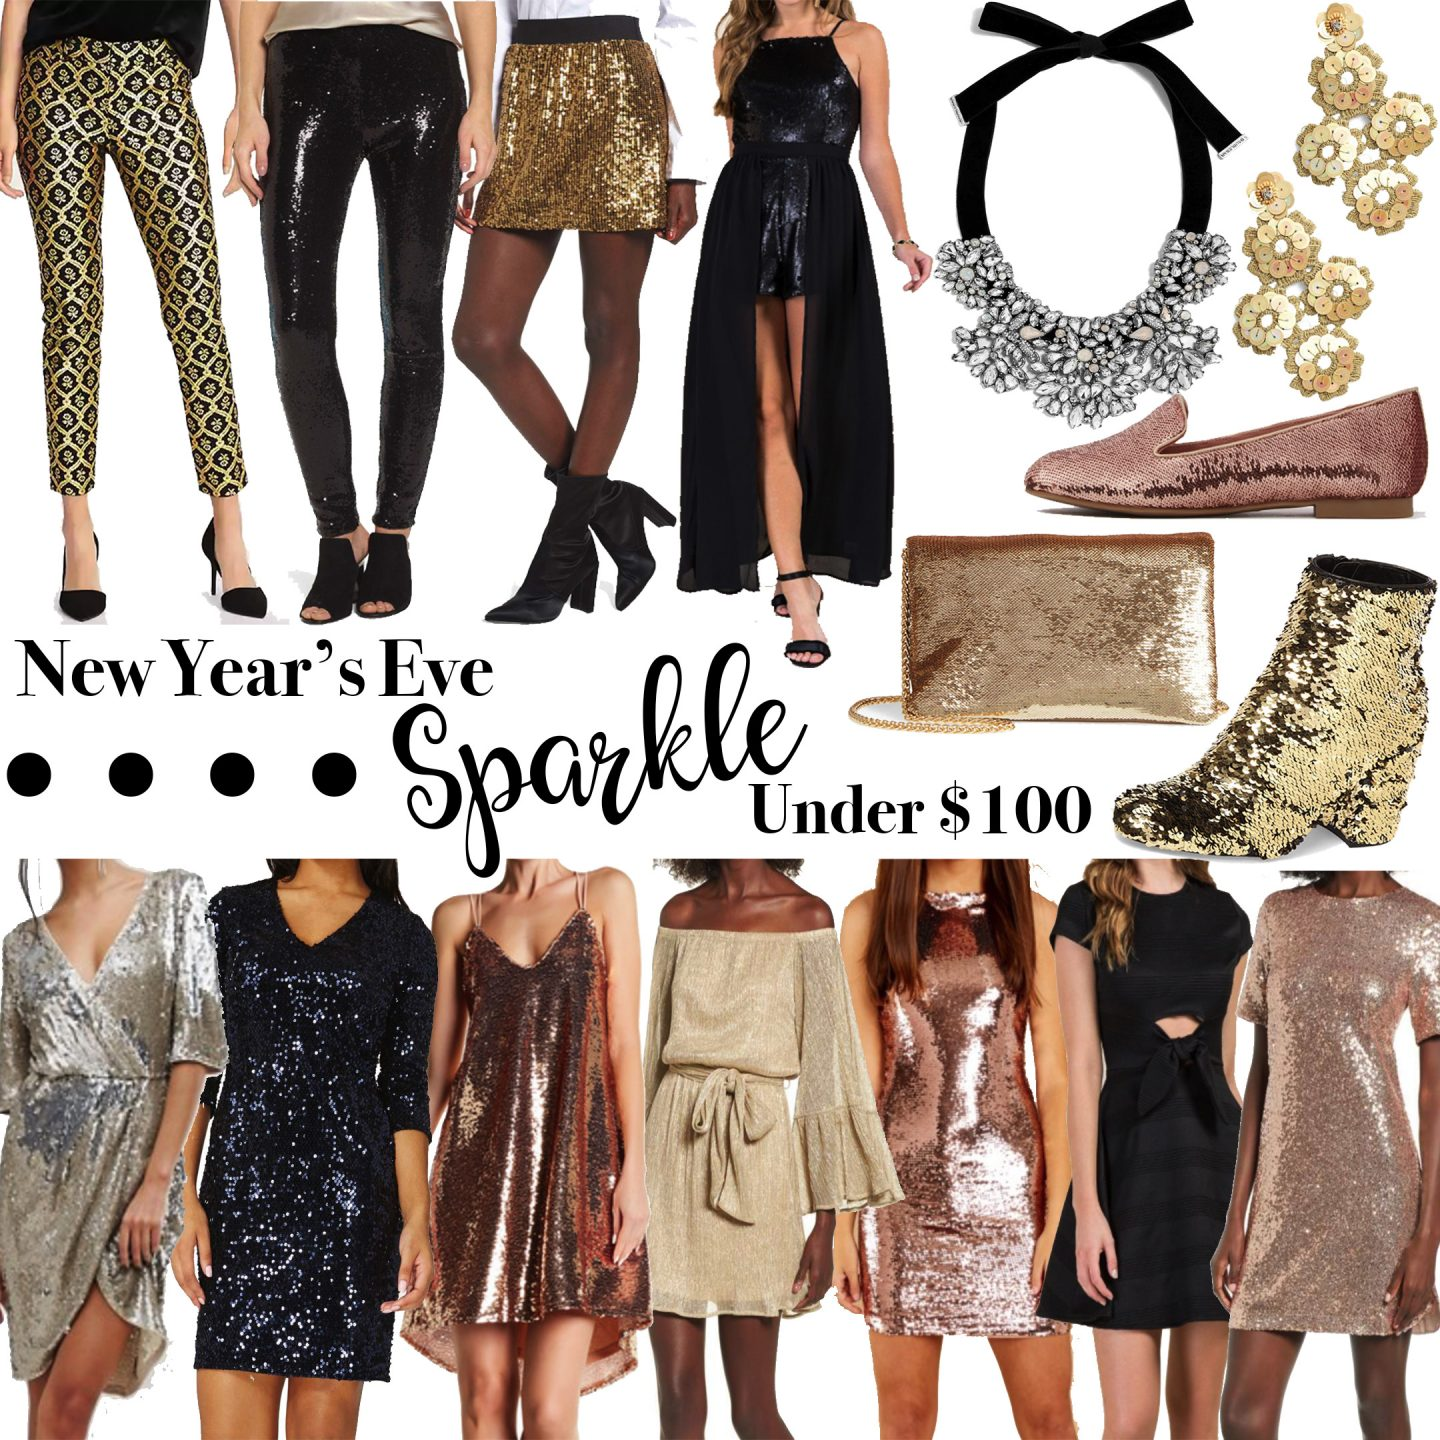 New Years Eve Outfits Under $100 by Washington DC style blogger Styled Blonde